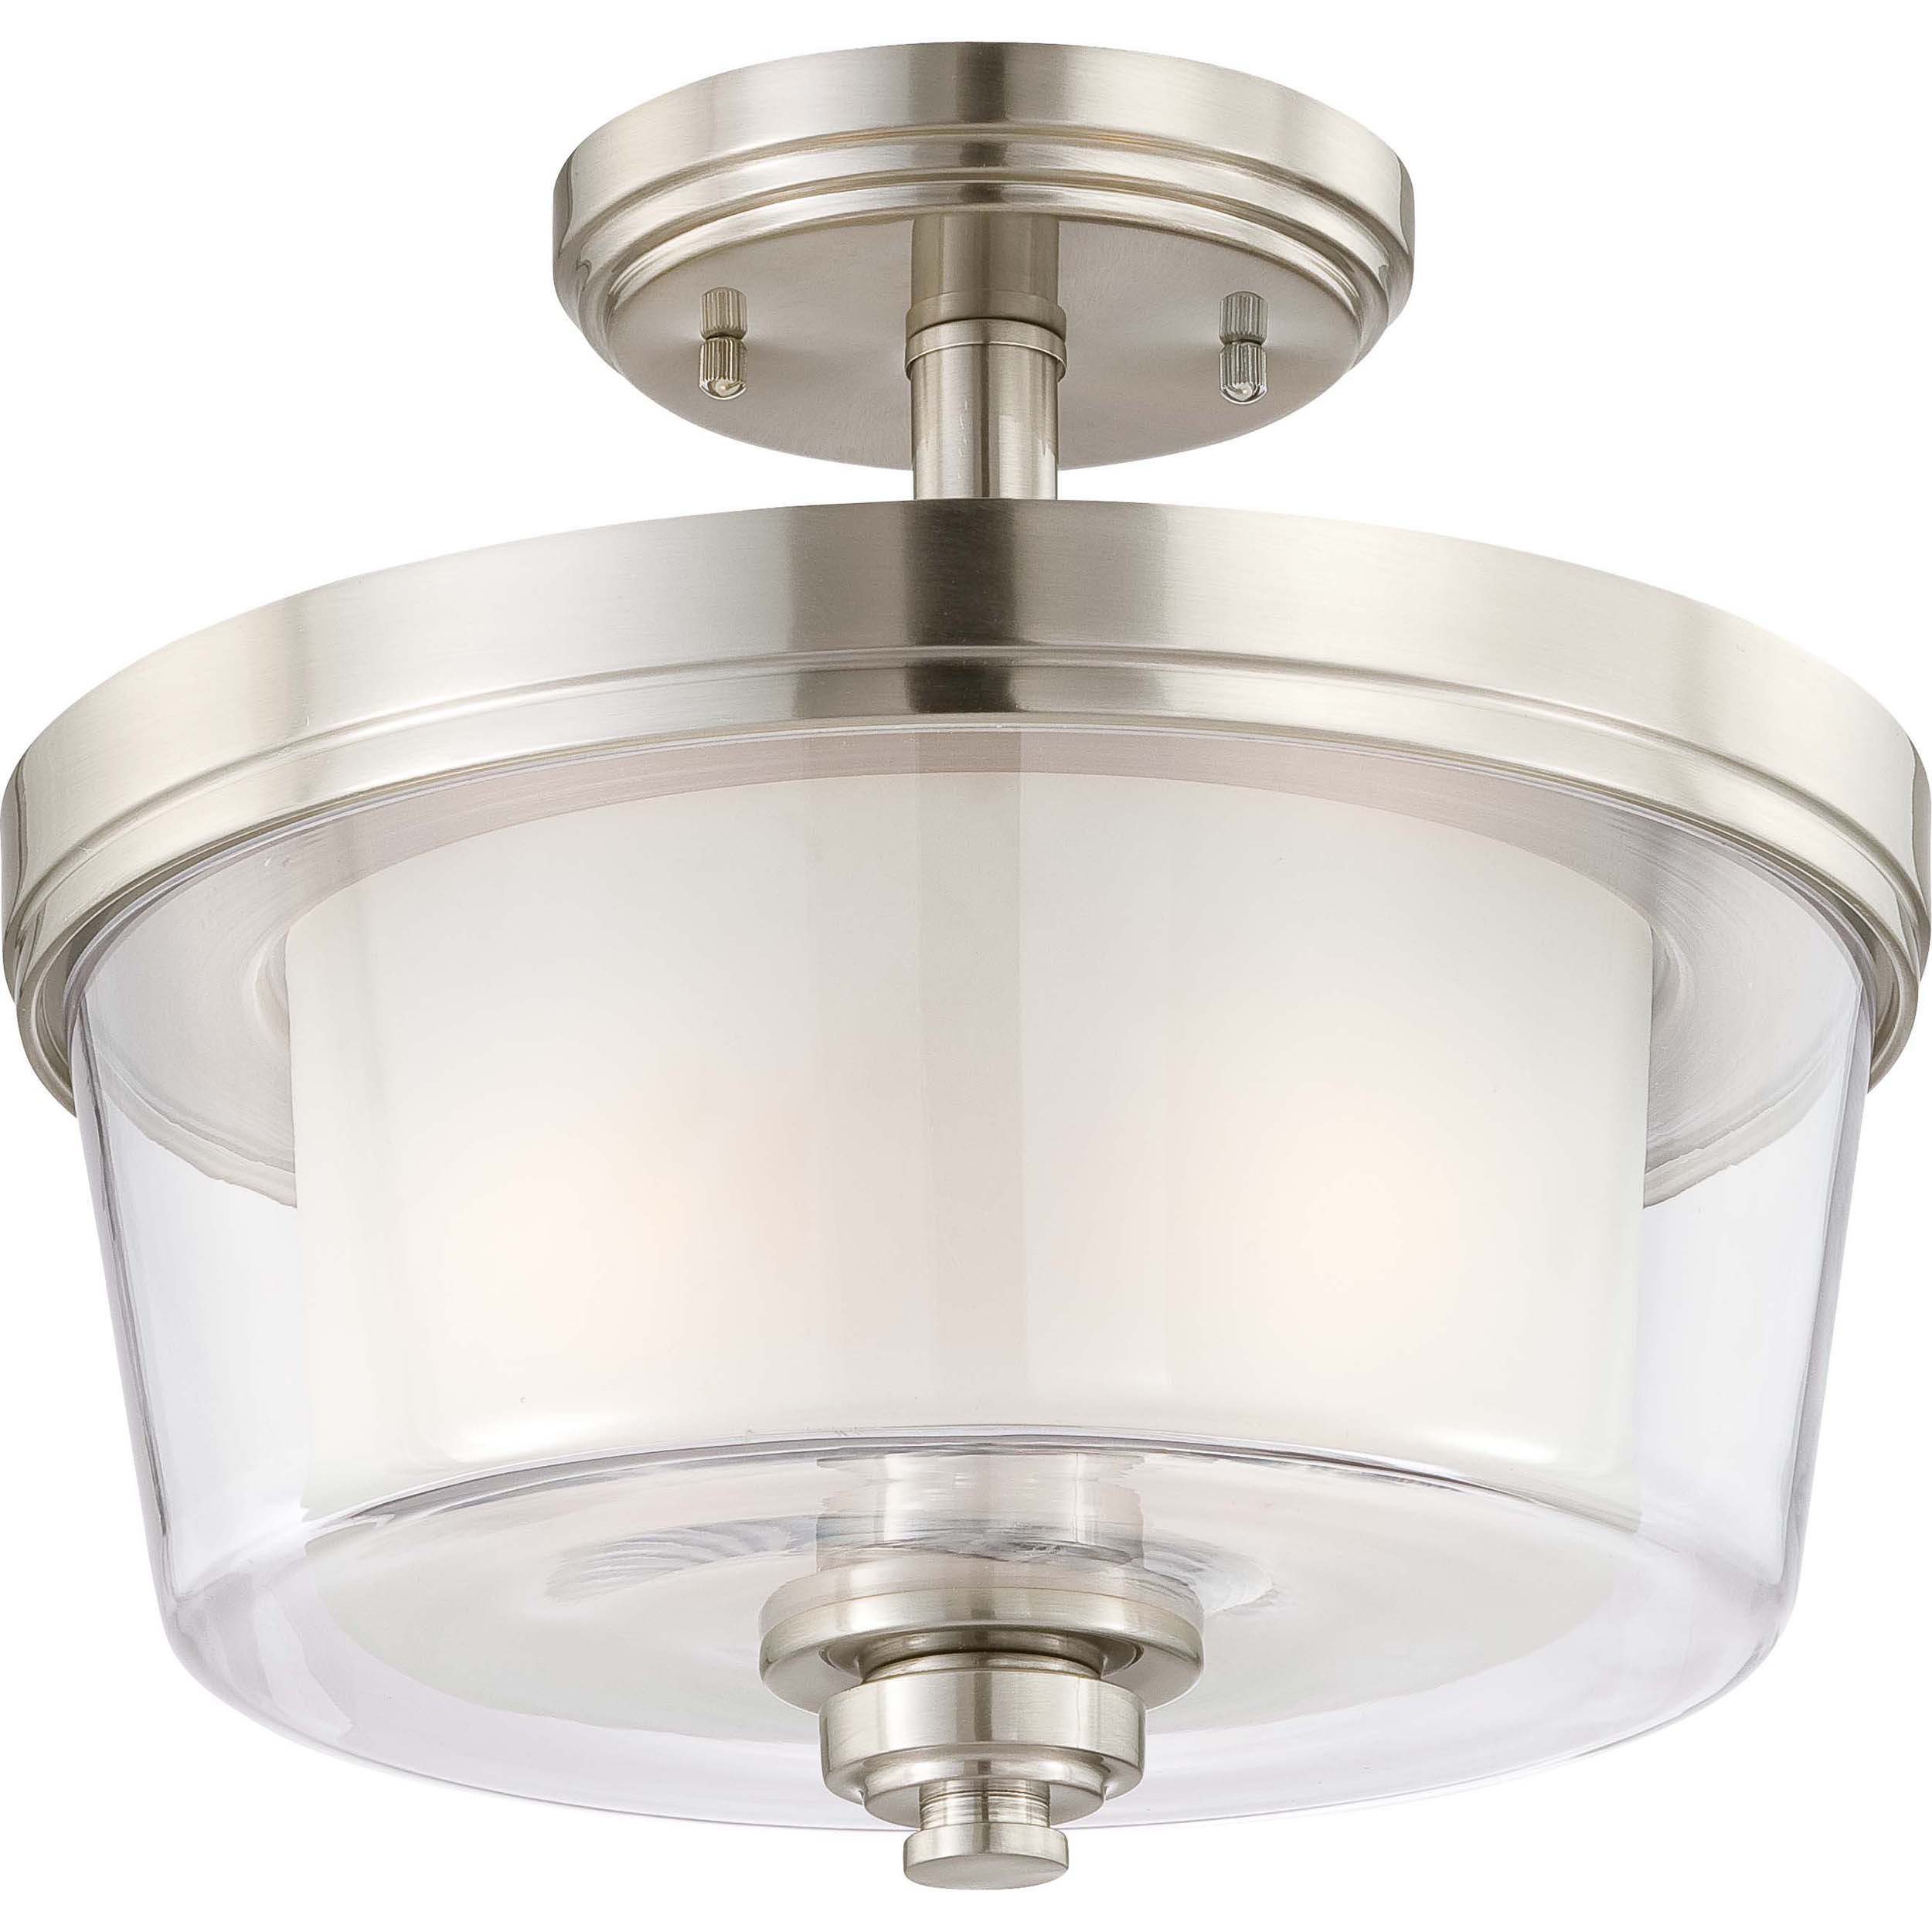 Decker Nickel and Frosted 2-Light Semi Flush Fixture